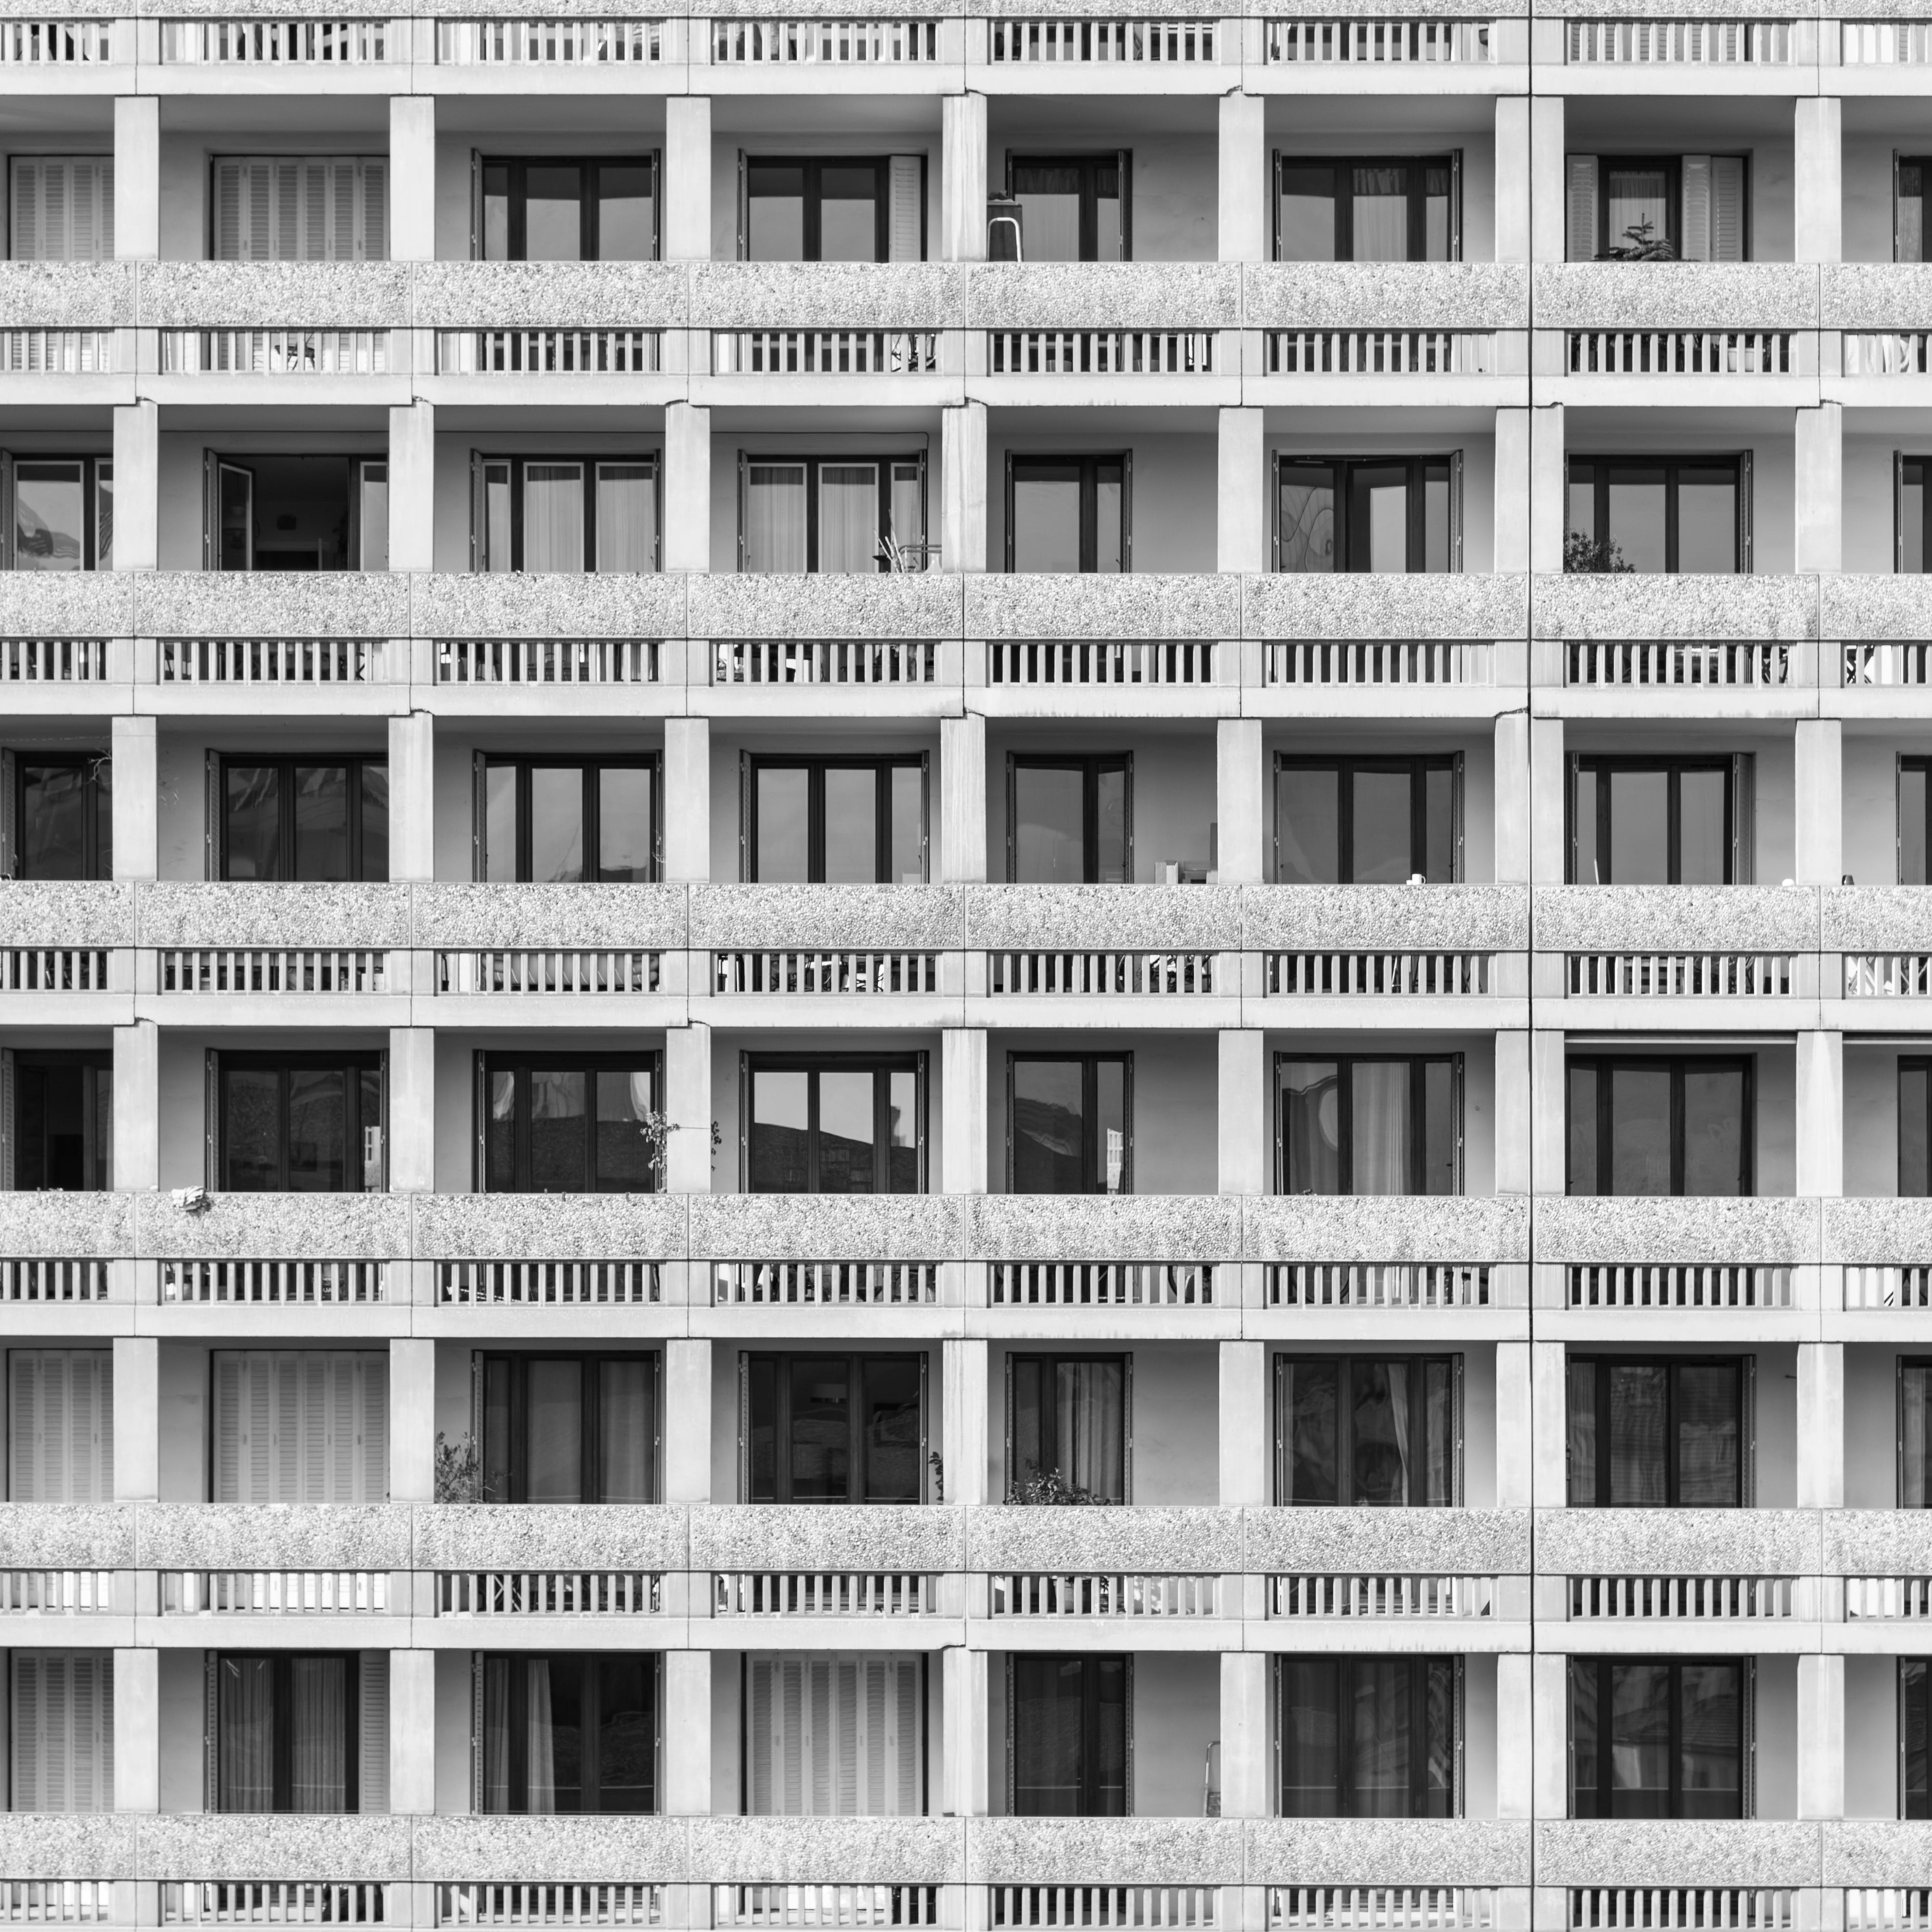 Free stock photo of apartment buildings, architectural design, balconies, balcony